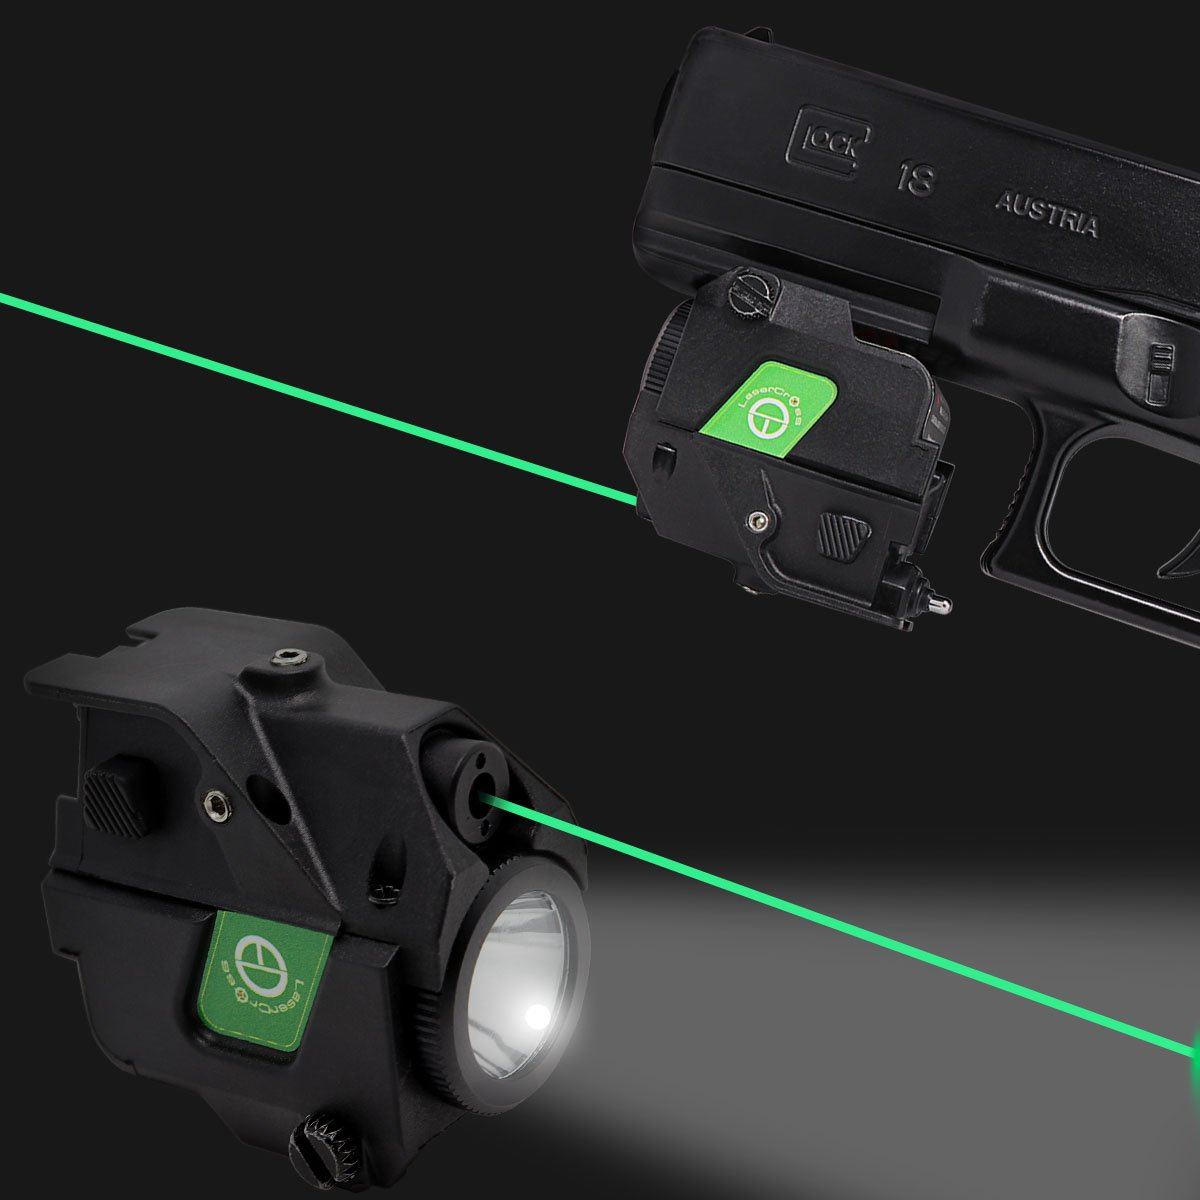 Lasercross Tactical Compact Green Dot Laser Sight,LED Flashlight Combo with 20mm Rail Picatinny On/Off Switch for Air Pistol,Airgun,Modem Semi-automatic Pistols,Handgun,Shotguns,Rifle etc (CLL103G)